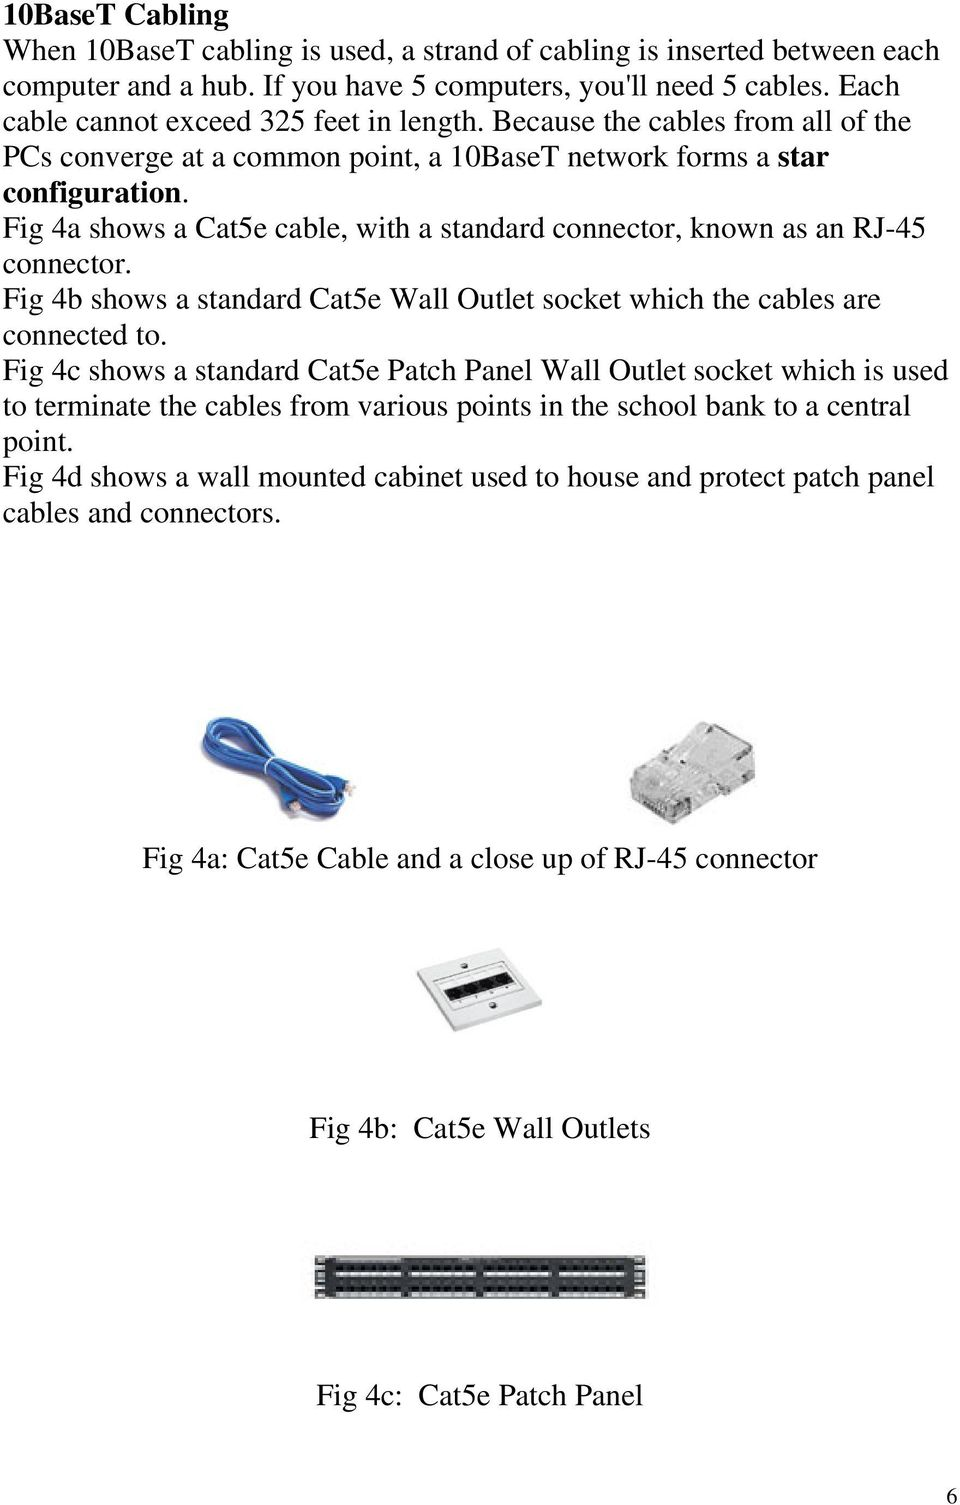 Fig 4a shows a Cat5e cable, with a standard connector, known as an RJ-45 connector. Fig 4b shows a standard Cat5e Wall Outlet socket which the cables are connected to.